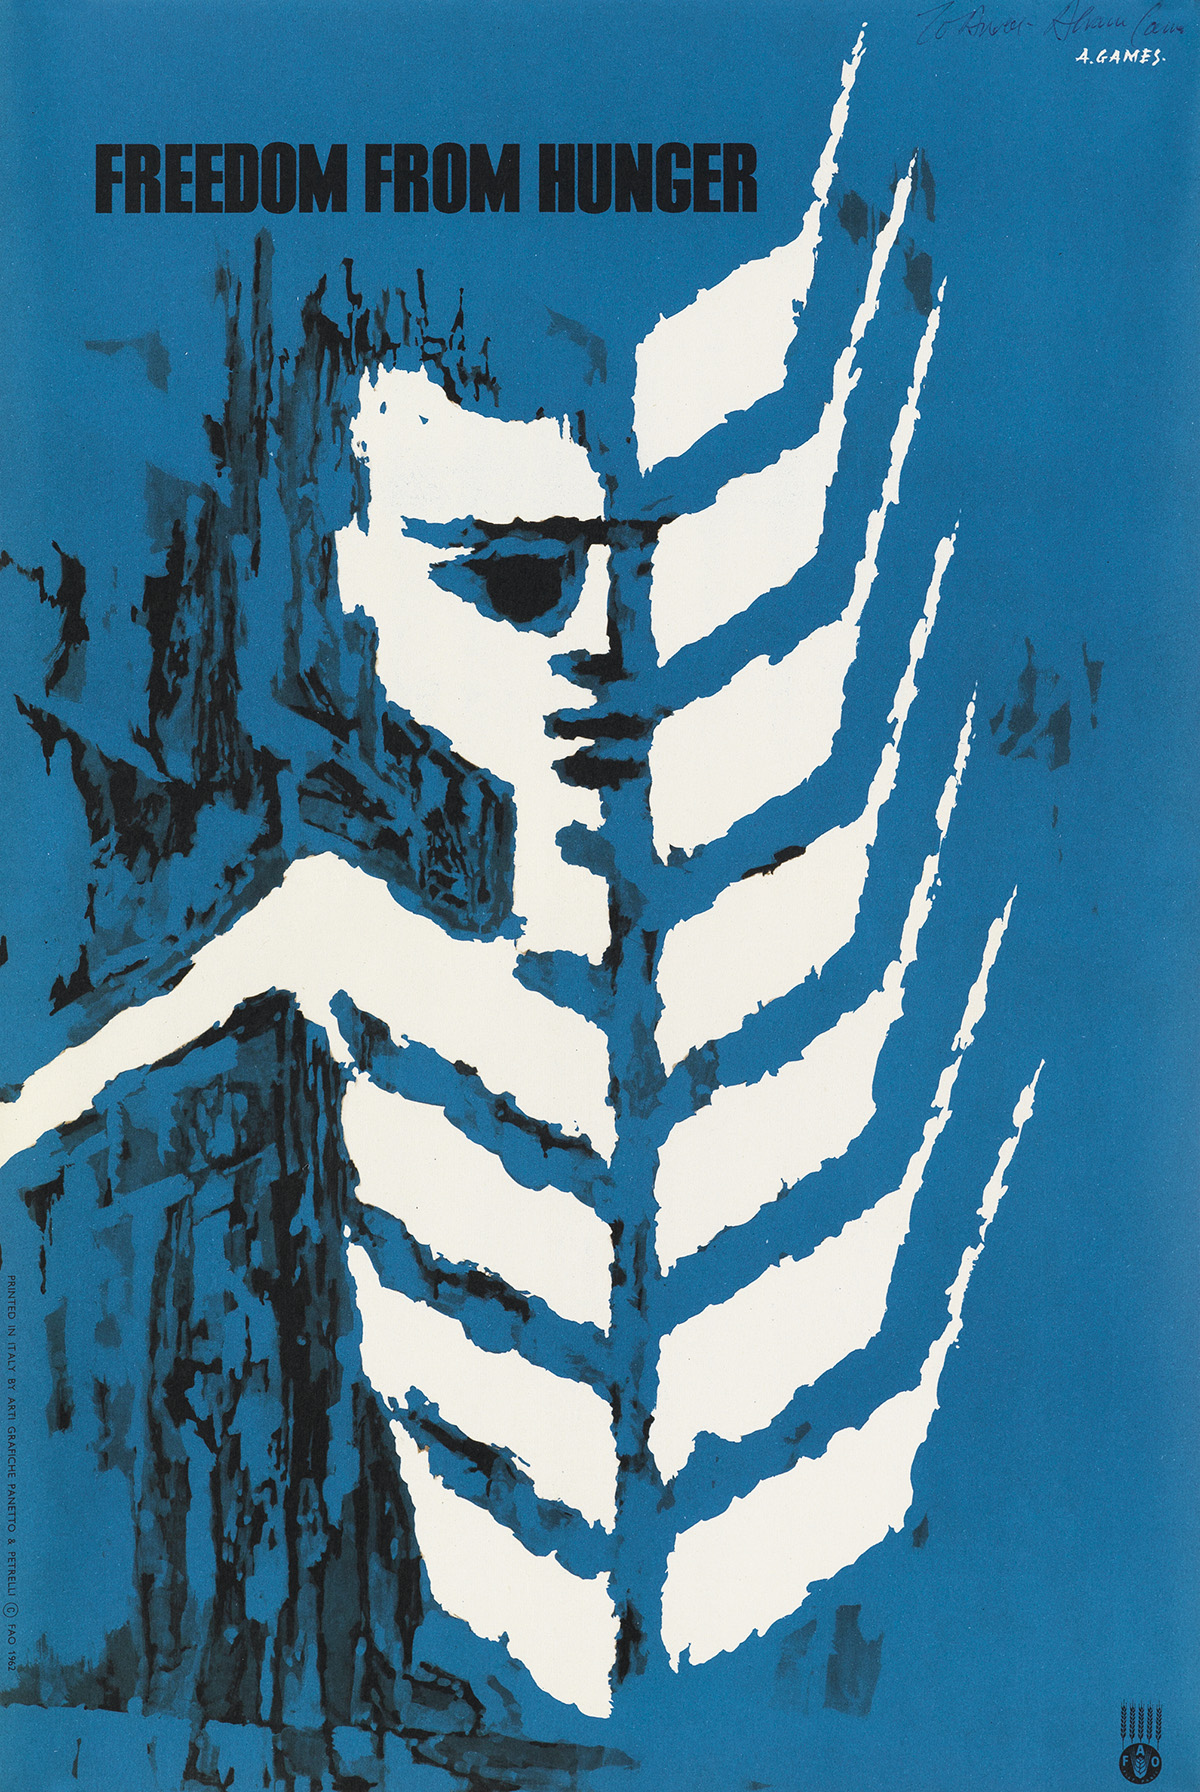 ABRAM-GAMES-(1914-1996)-FREEDOM-FROM-HUNGER-1960-19x12-inche